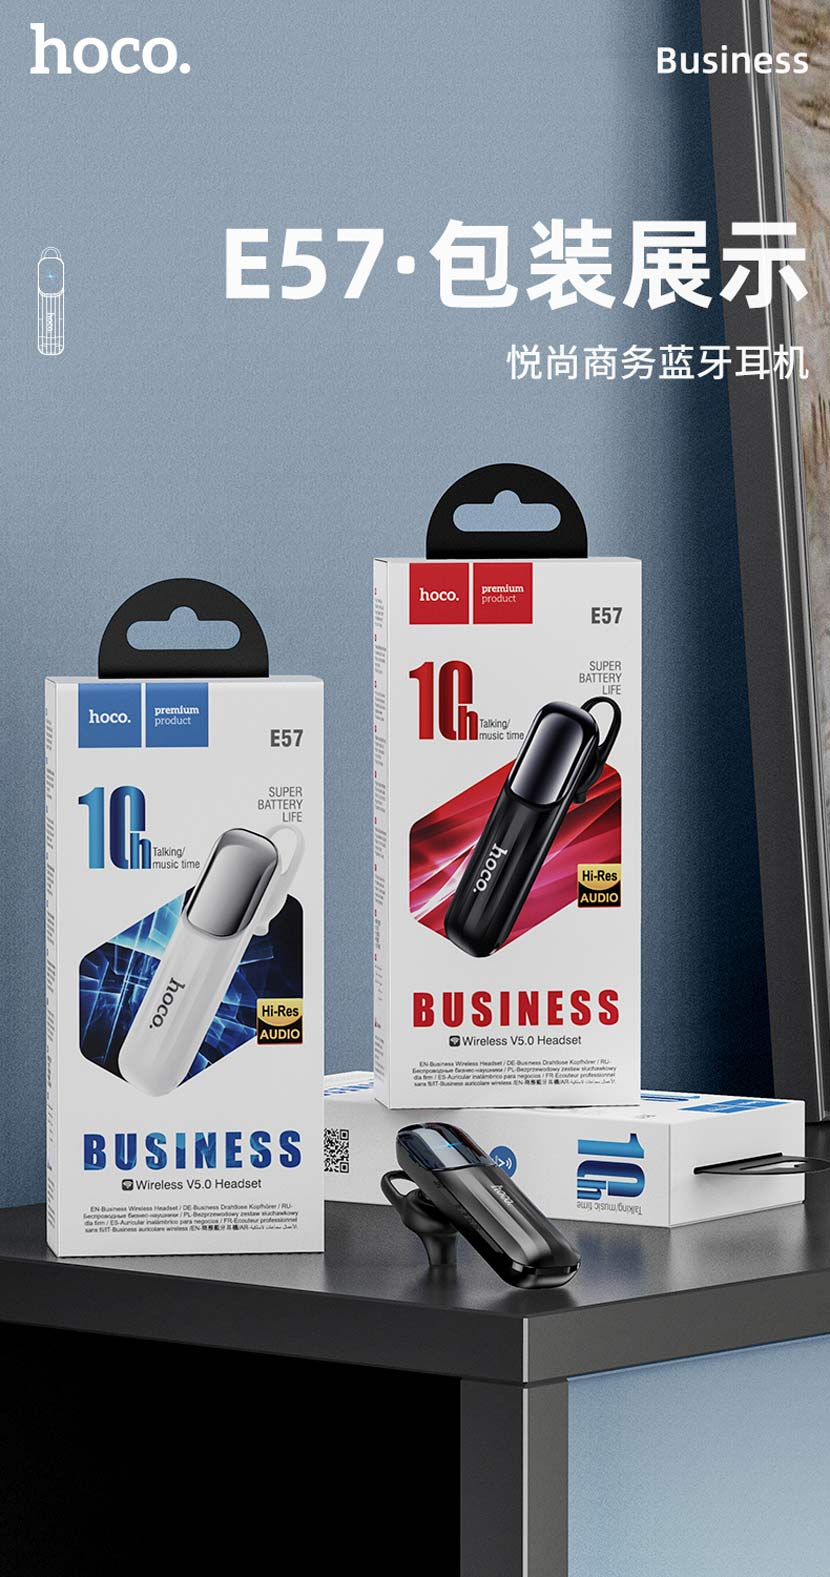 hoco news e57 essential business bt headset package cn